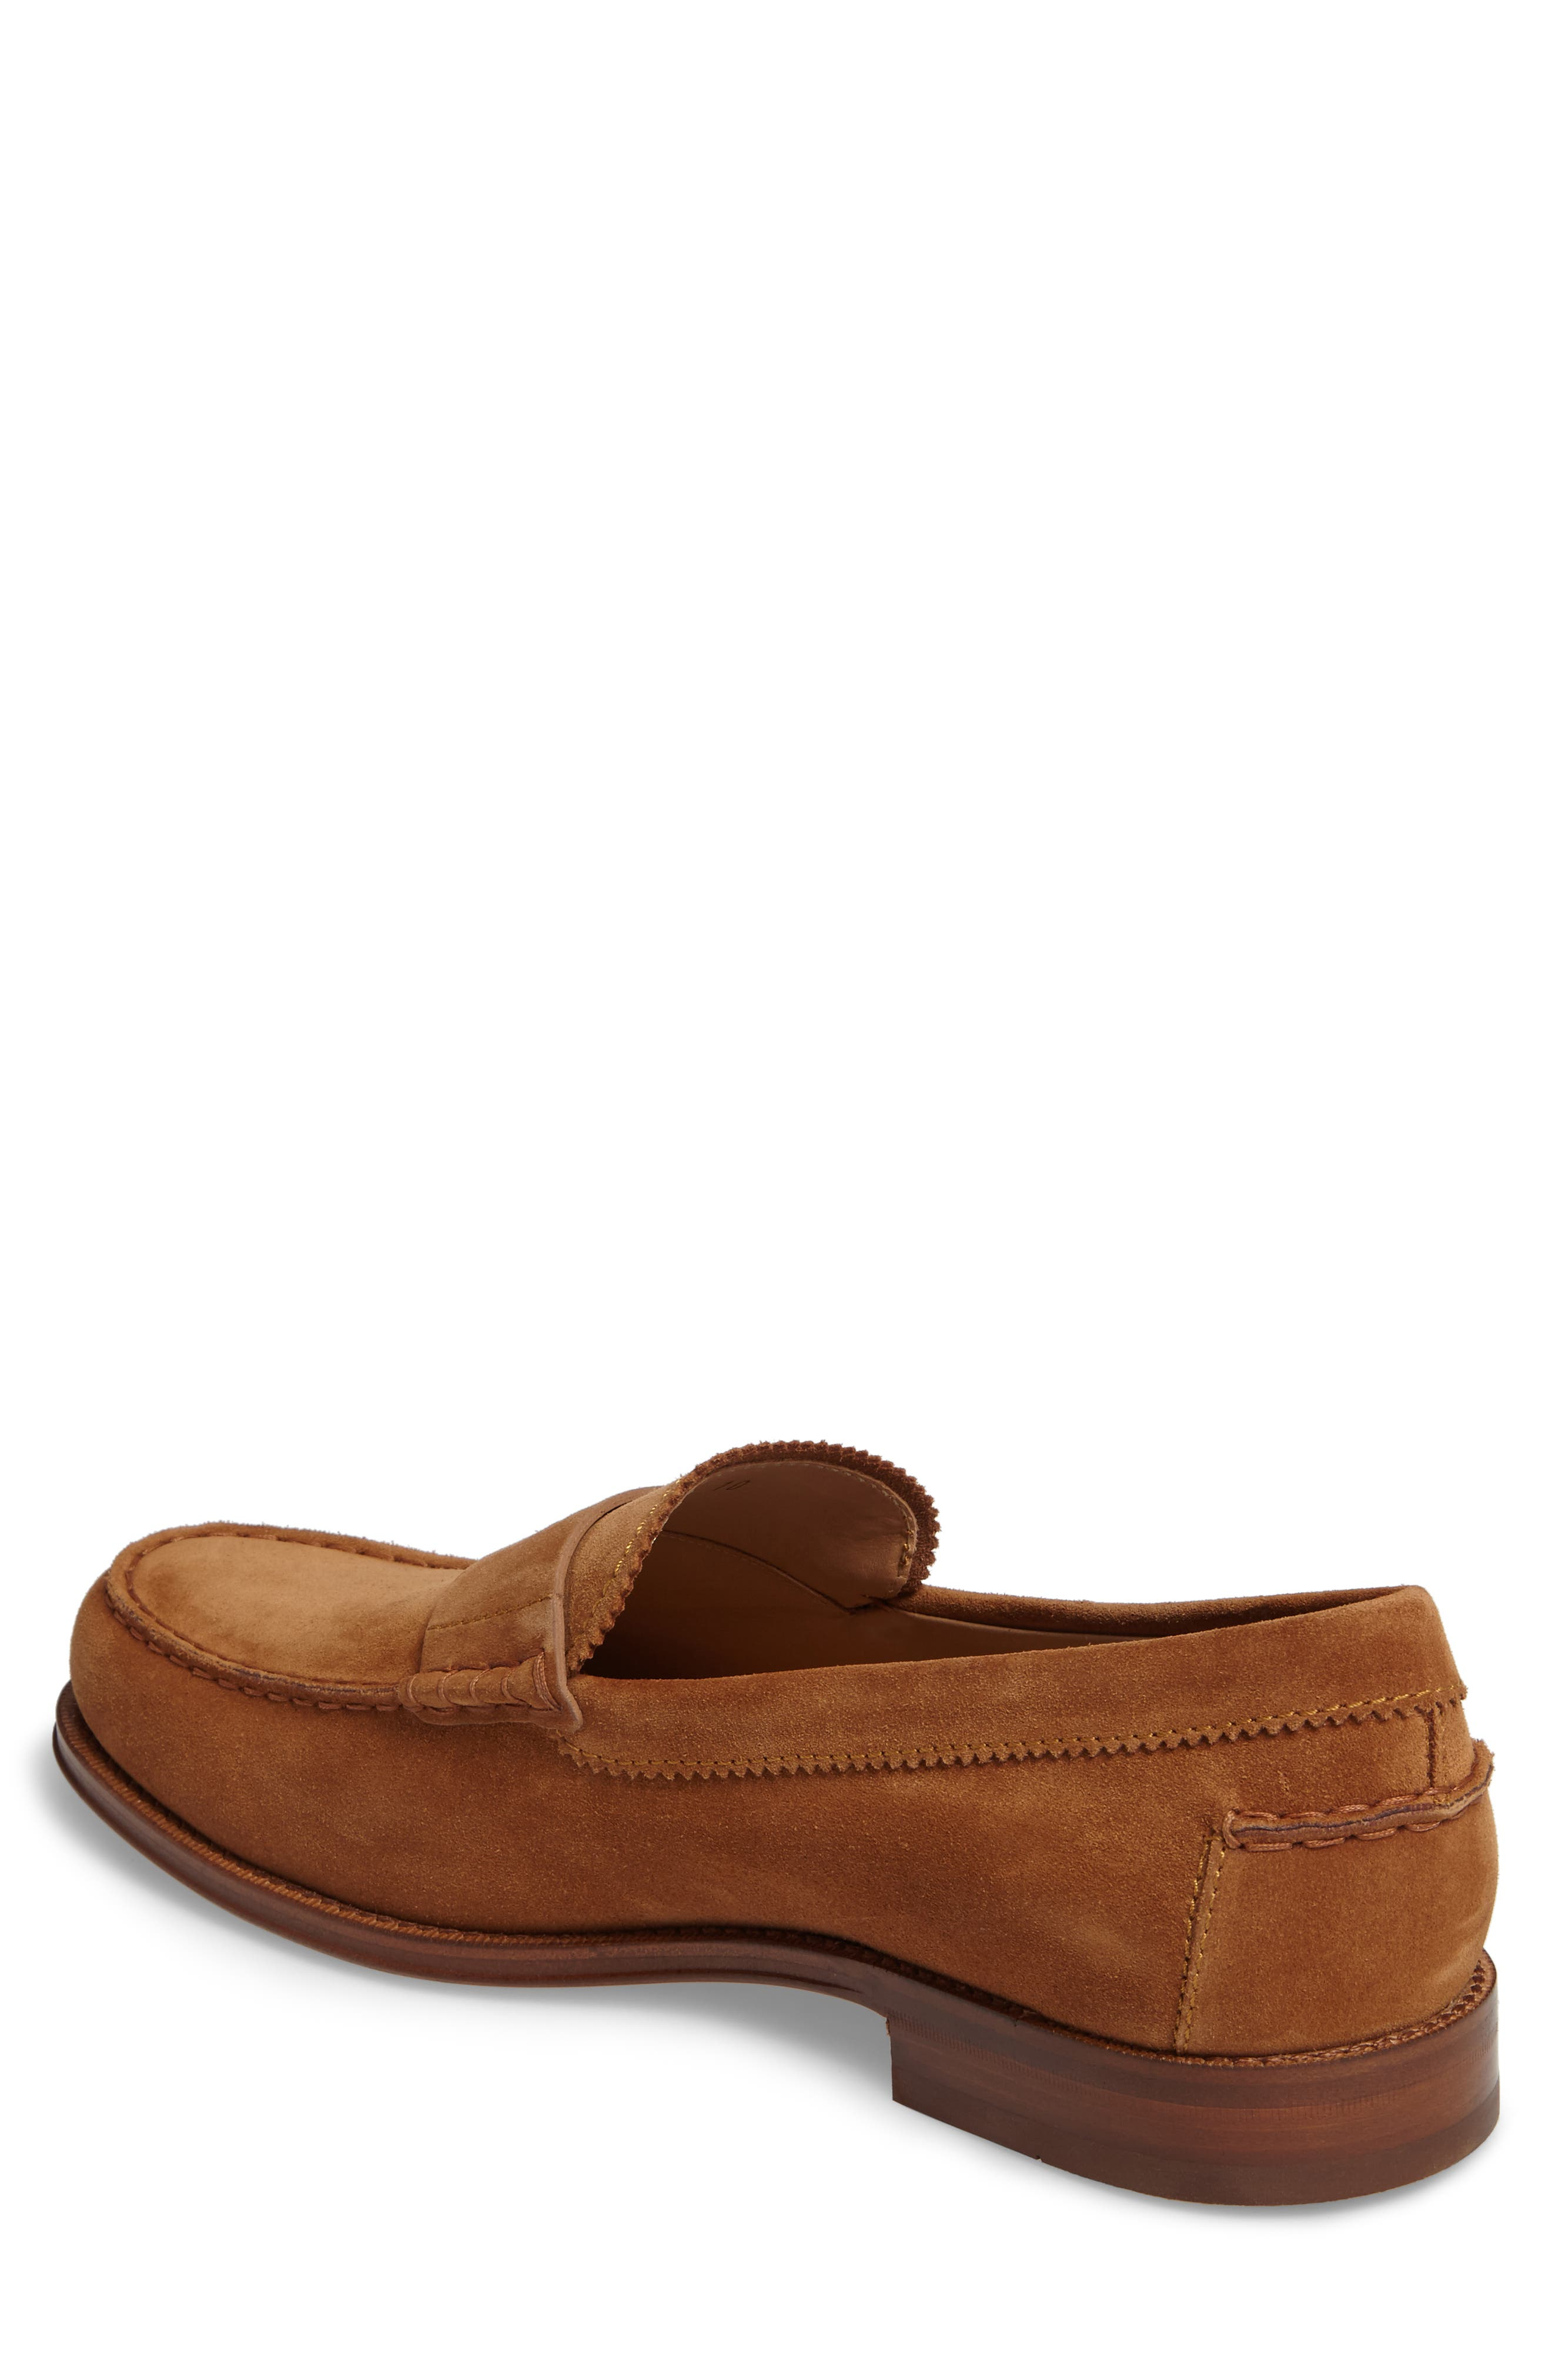 Suede Penny Loafer,                             Alternate thumbnail 3, color,